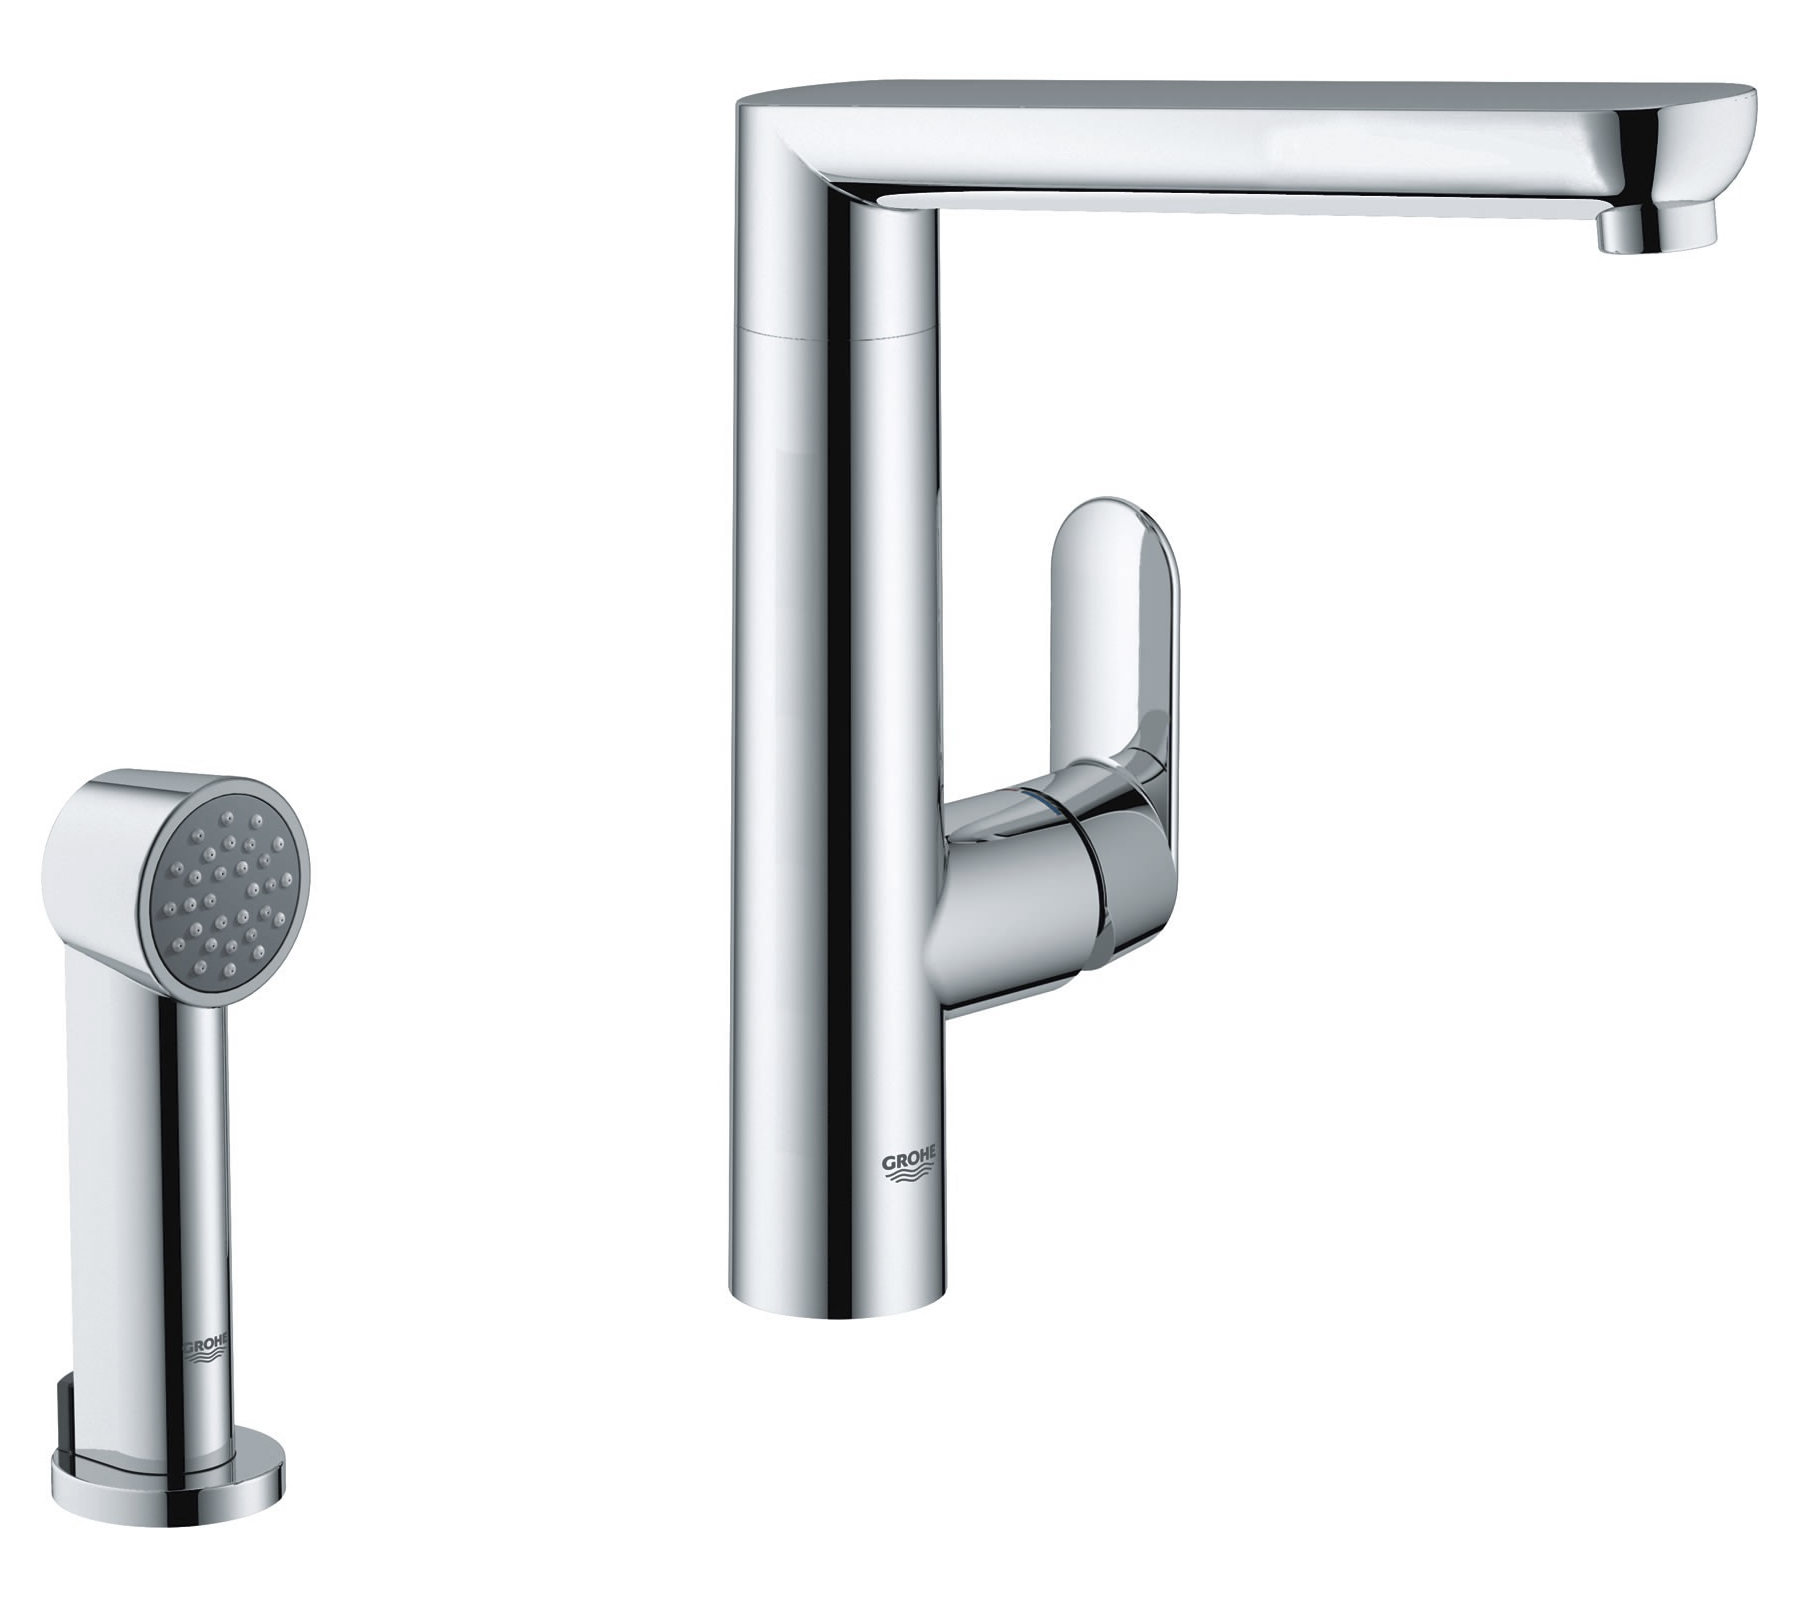 grohe k7 single lever kitchen sink mixer tap with pull out. Black Bedroom Furniture Sets. Home Design Ideas